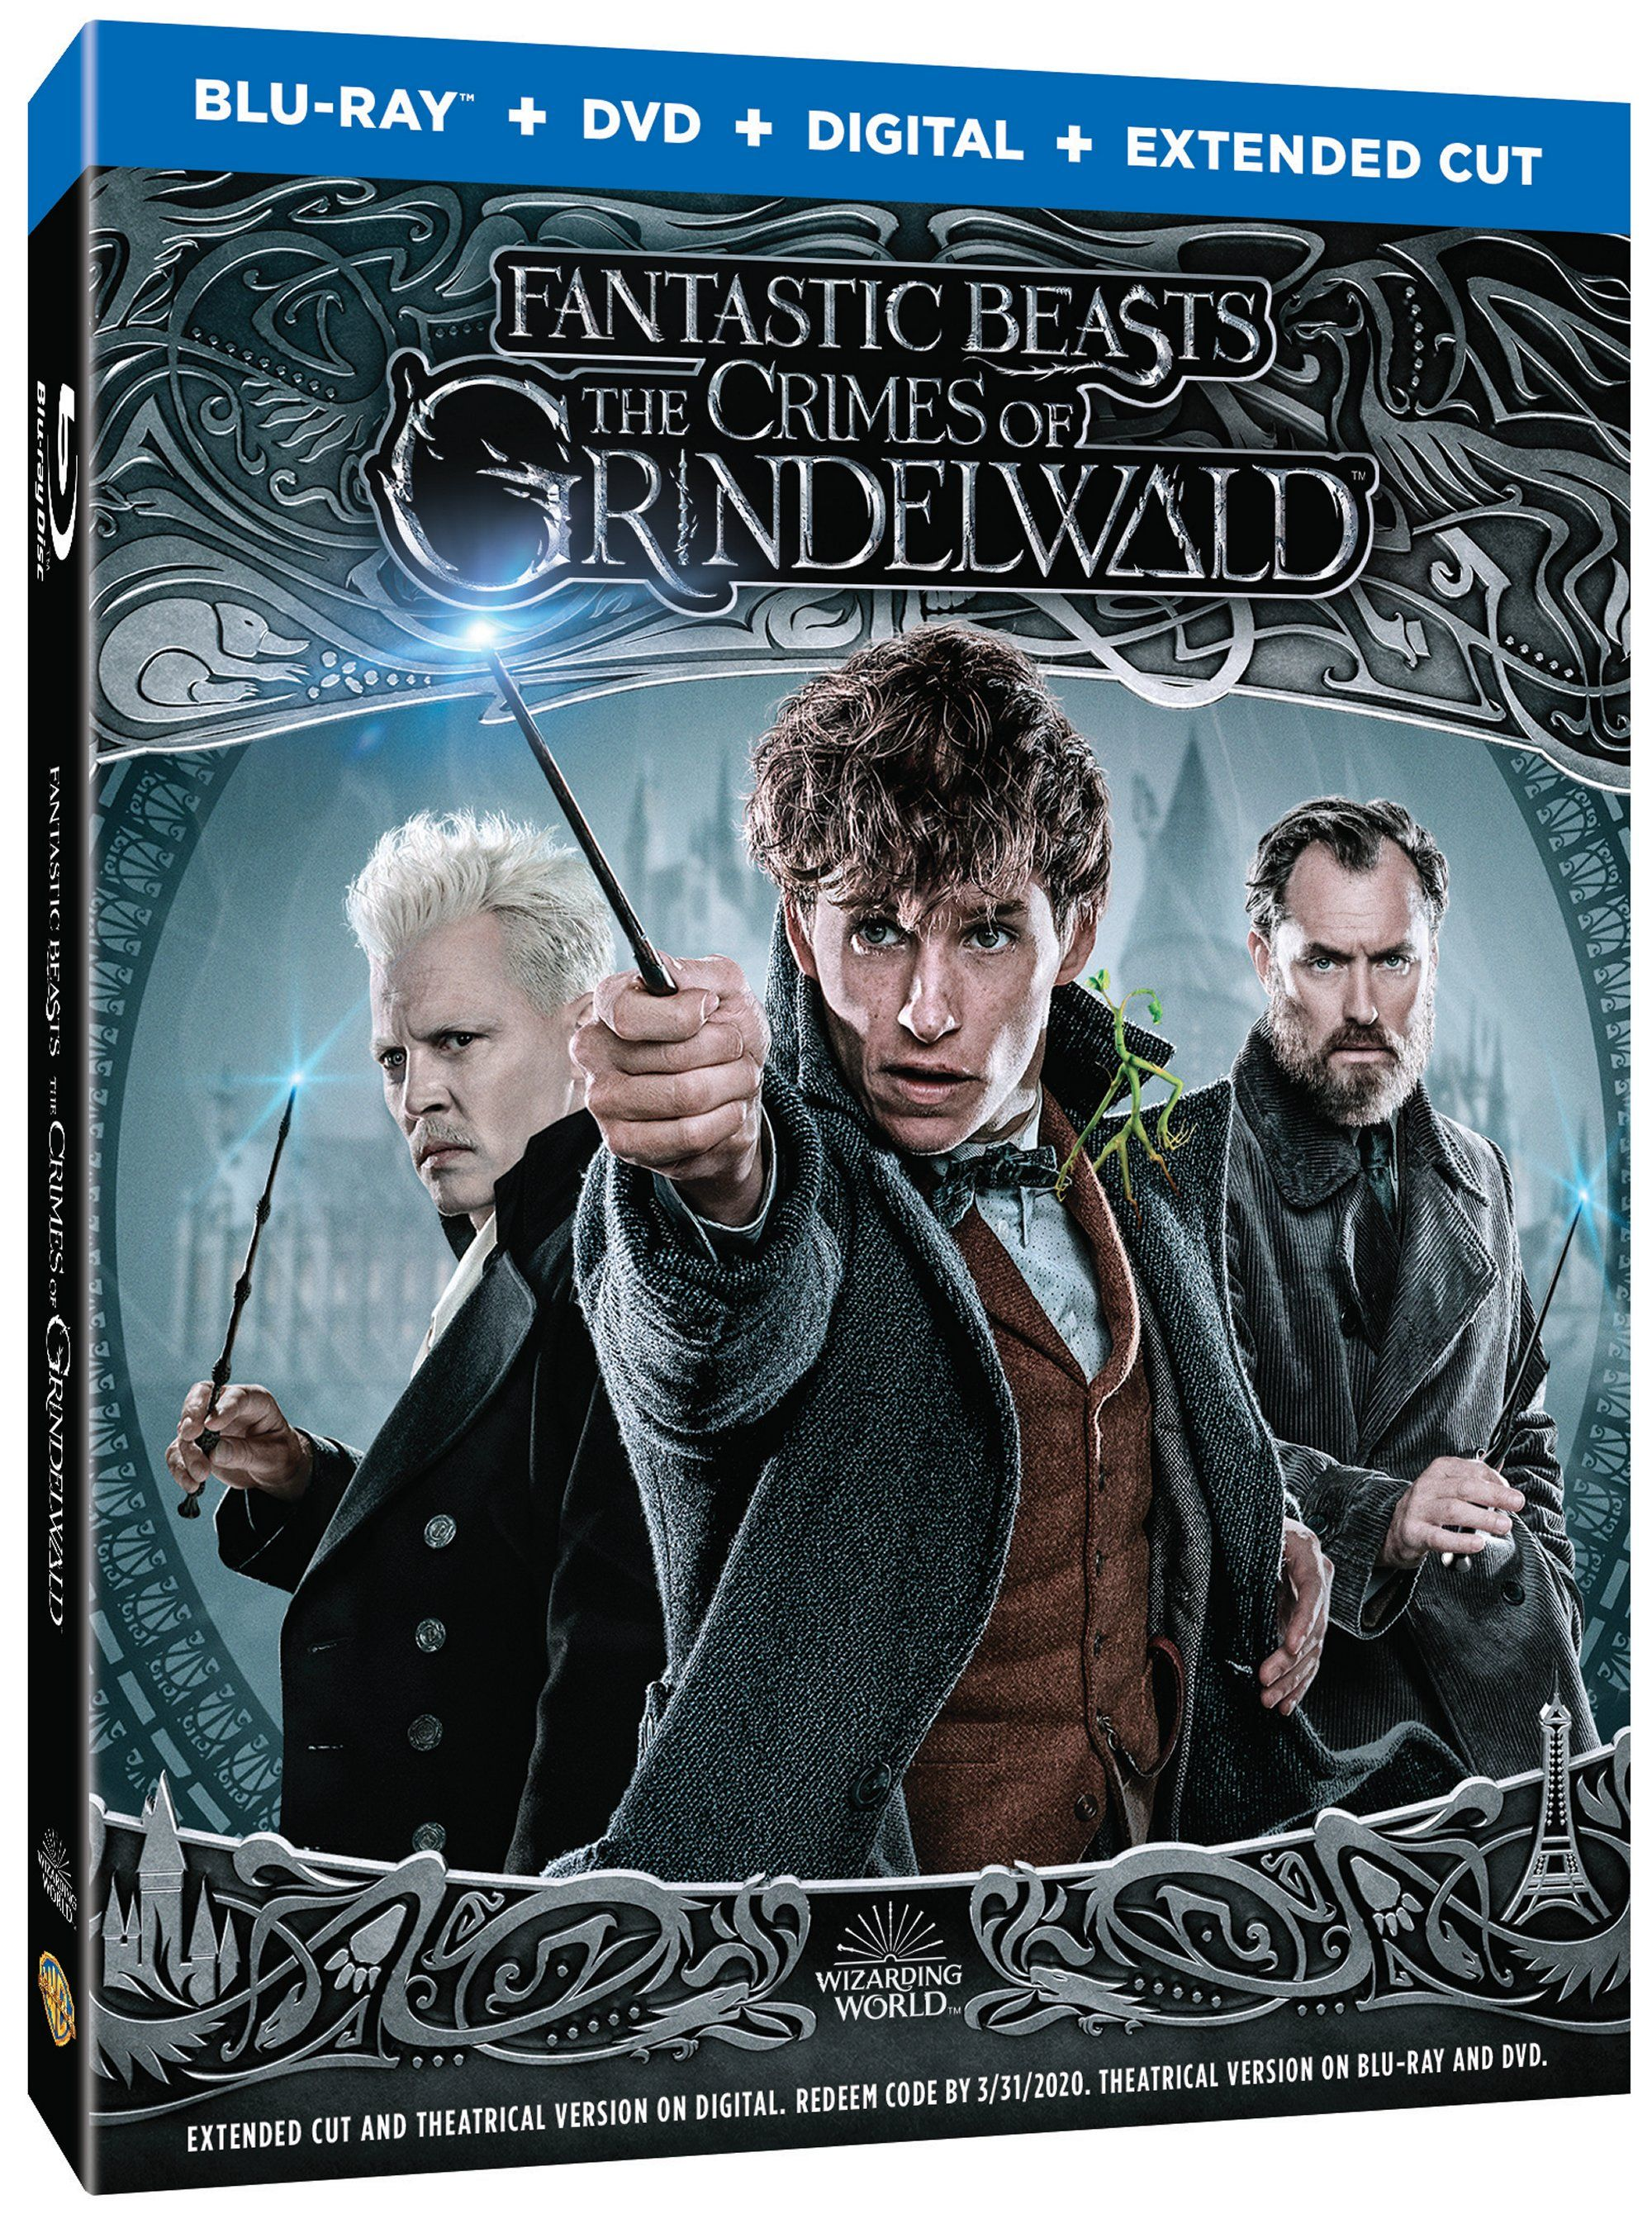 Fantastic Beasts 2 Bluray Includes Extended Cut of the Film | Collider